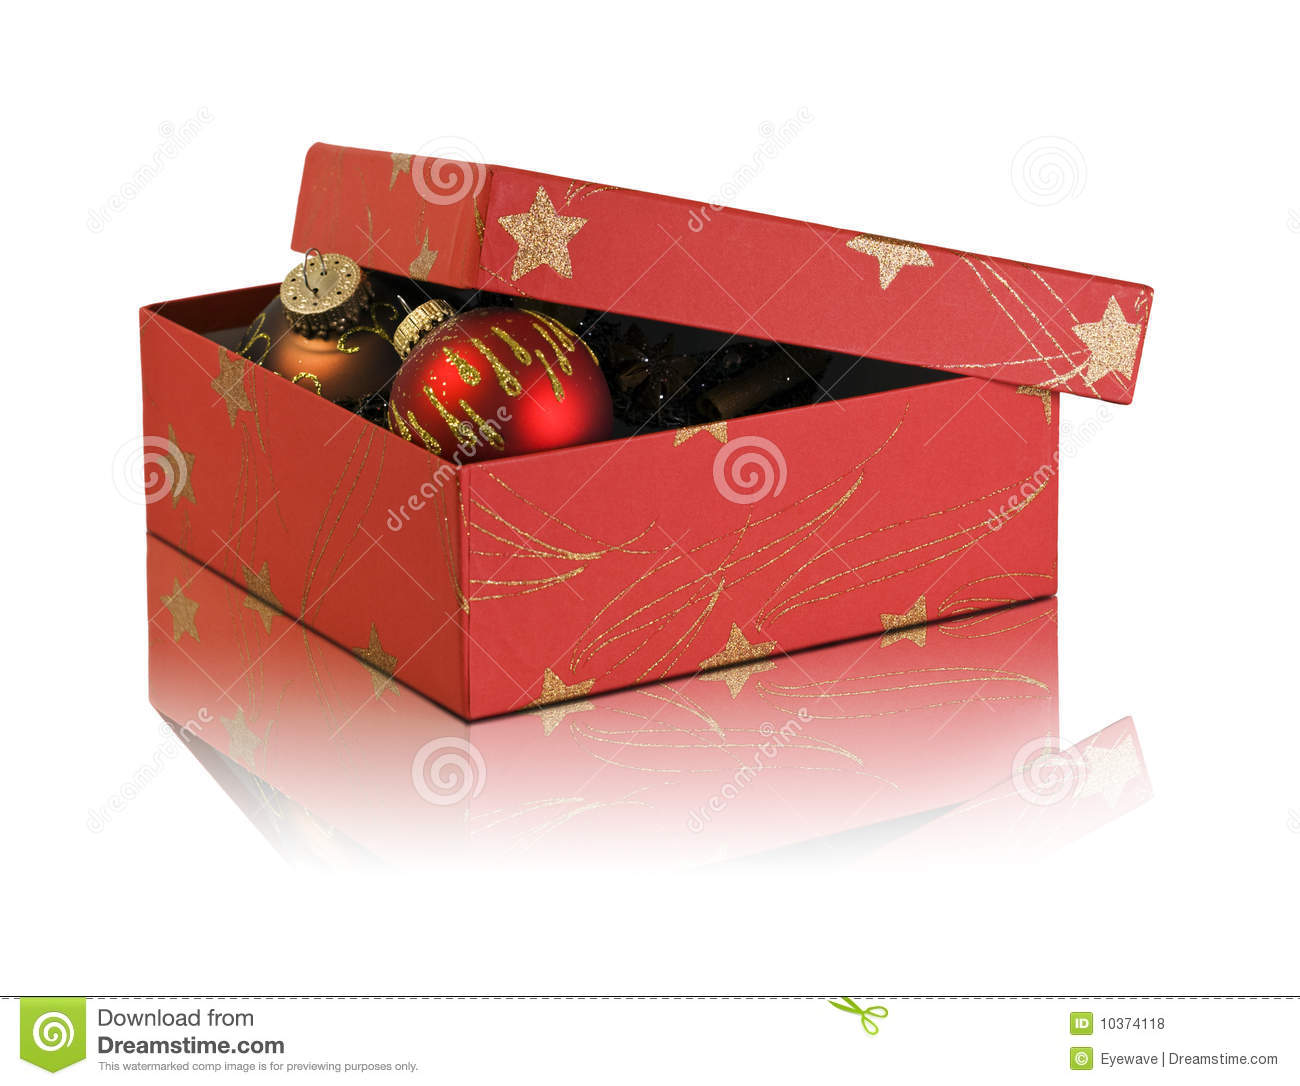 download cardboard box with christmas decoration stock photo image of ornate gold 10374118 - Cardboard Box Christmas Decorations